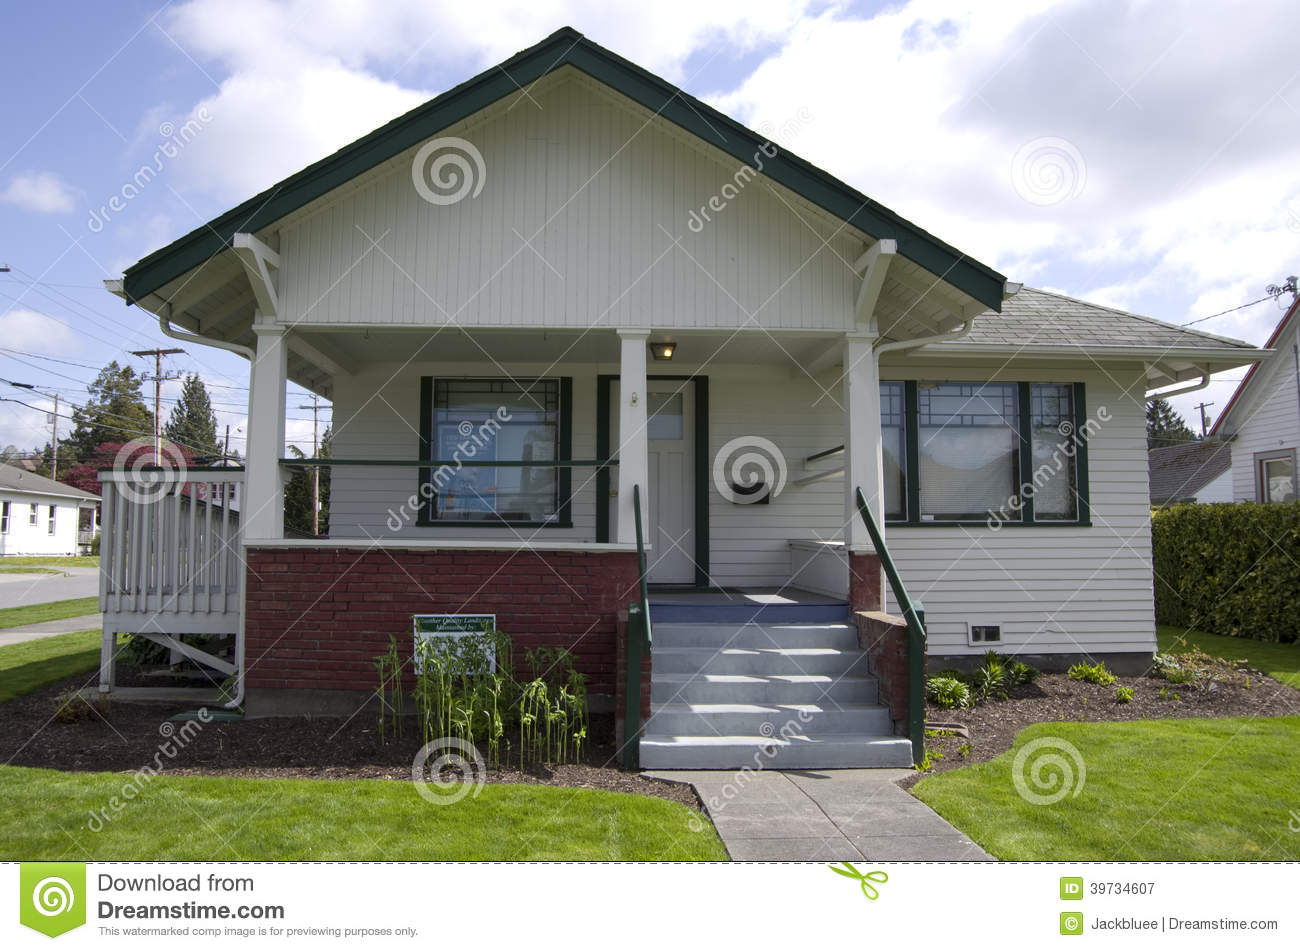 Old house stock image image of architecture level clean for Small house builders washington state